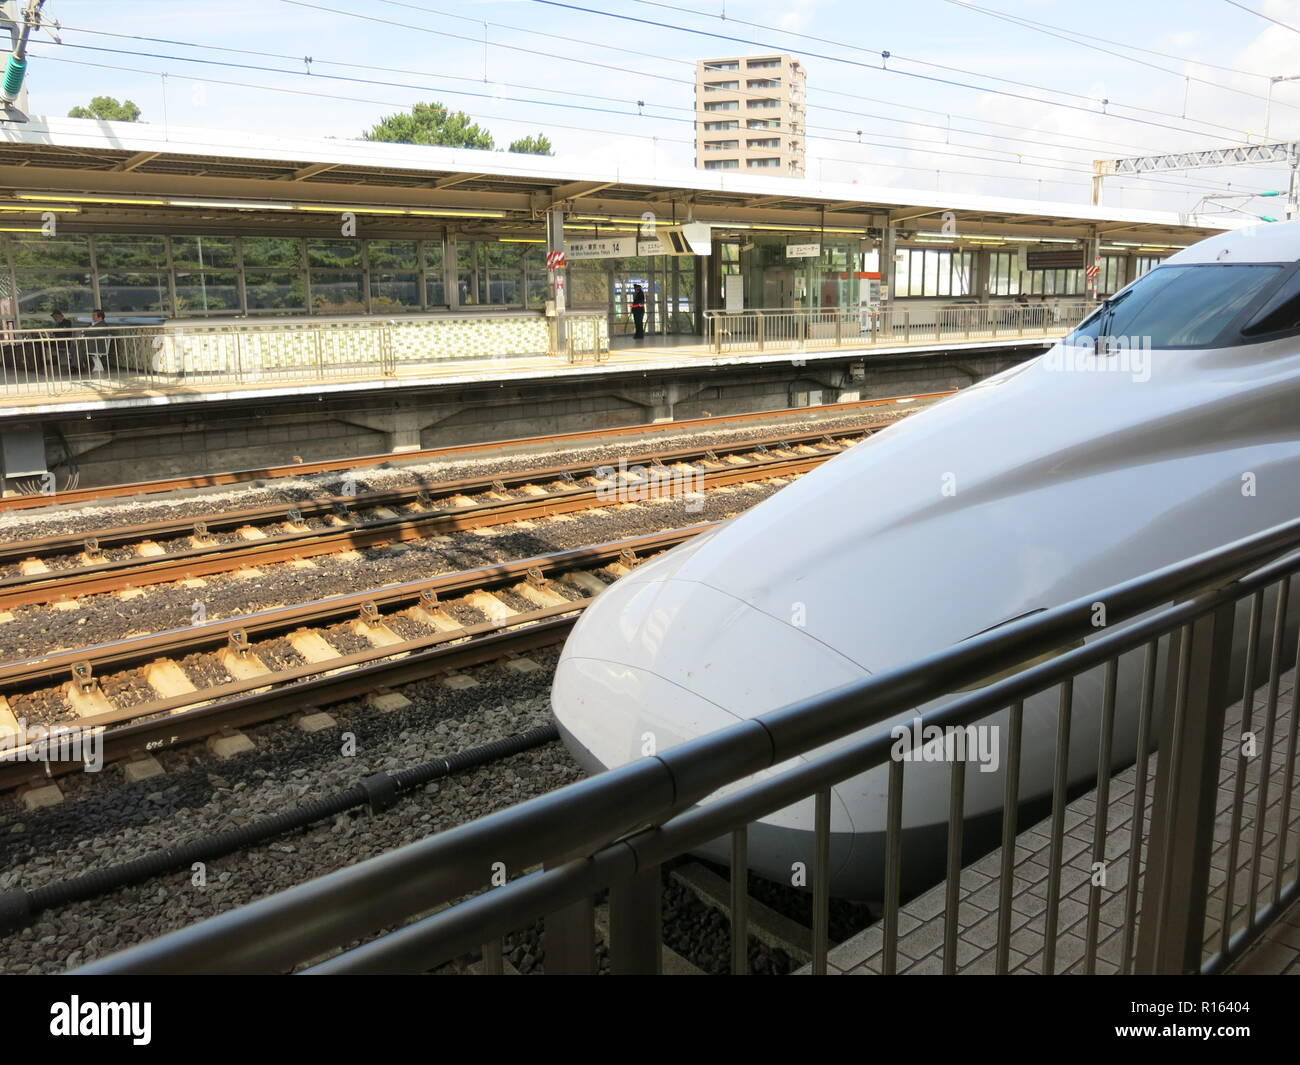 The shiny white sleekness of Japan's Bullet Train is an iconic sight in railway engineering - Stock Image